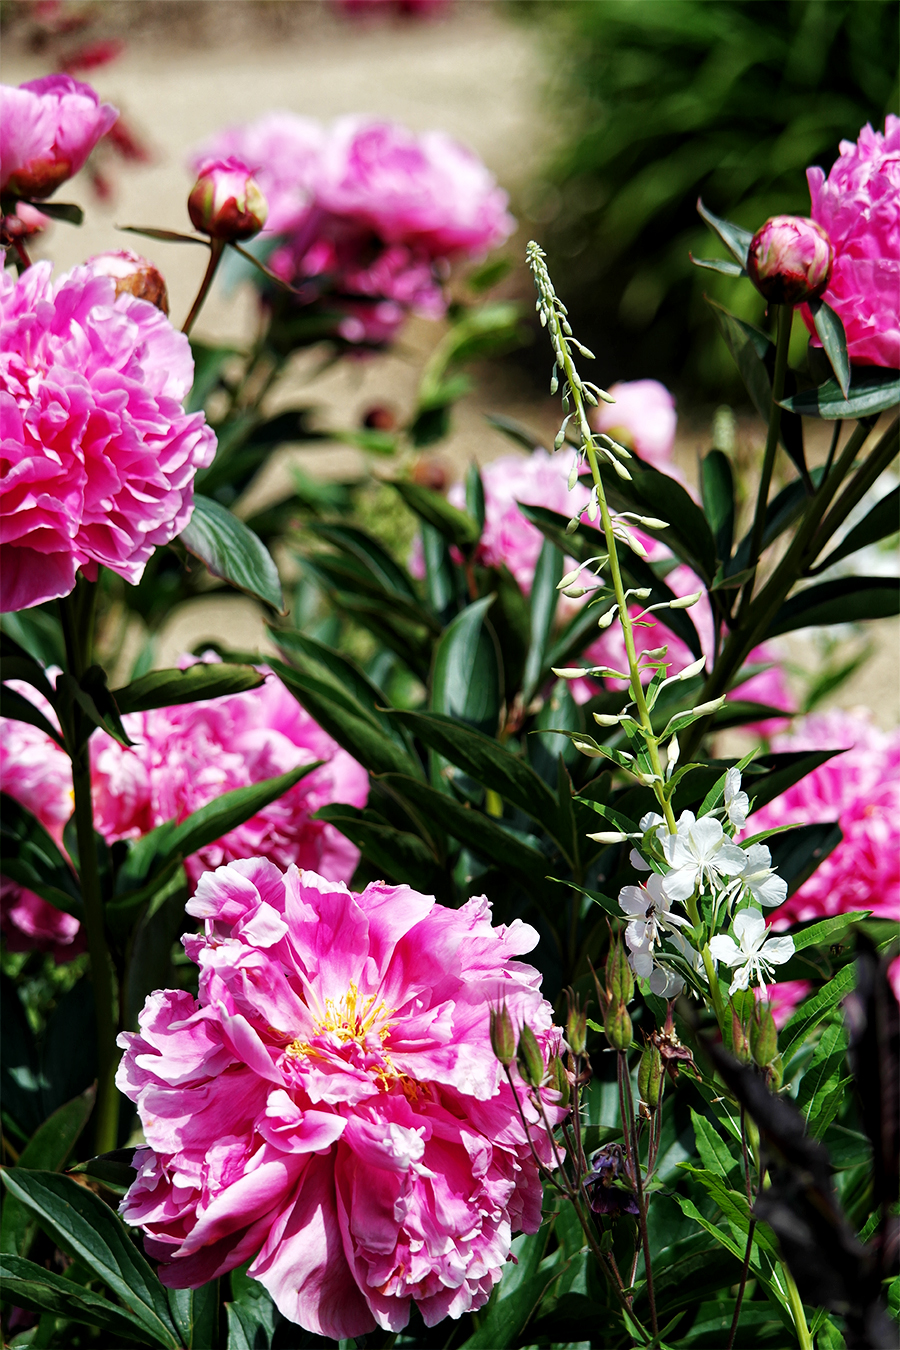 Peonies at Exbury Gardens, Hampshire